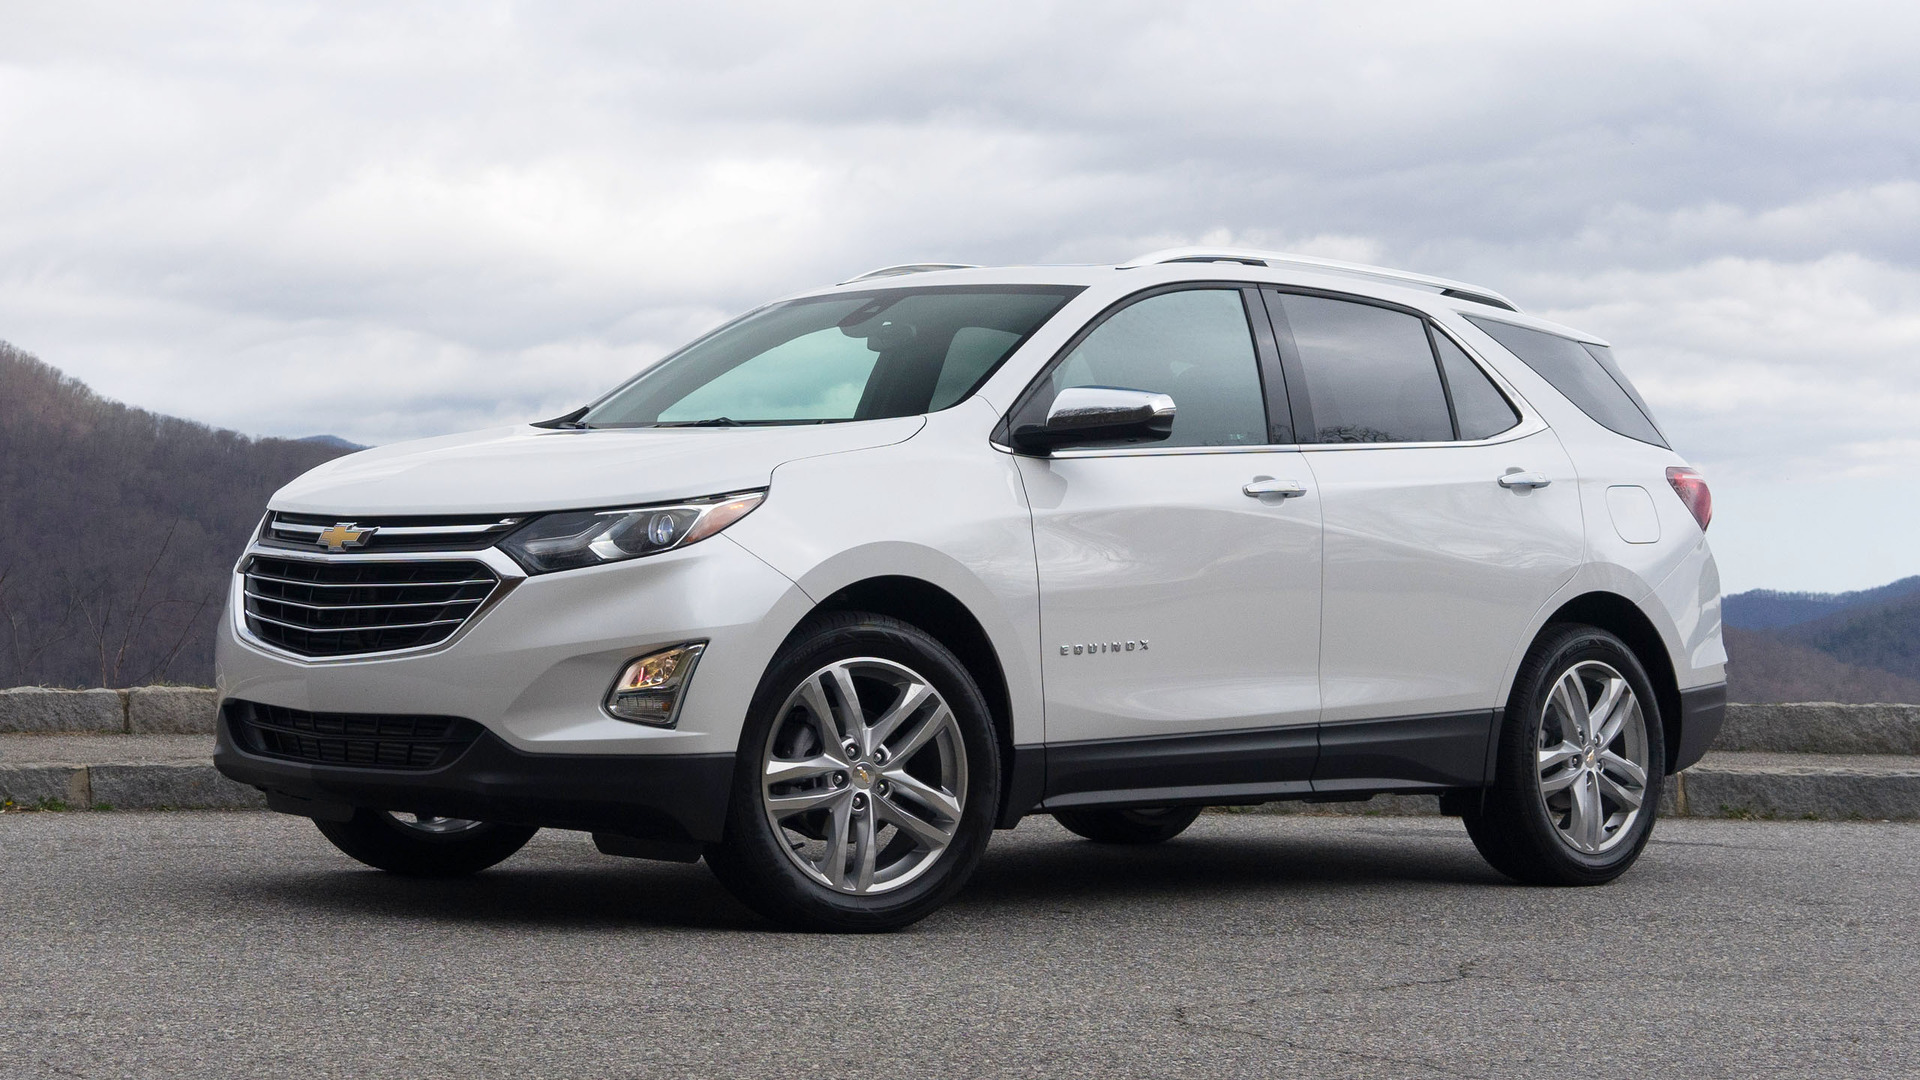 2018 chevy equinox first drive lighter smarter better. Cars Review. Best American Auto & Cars Review